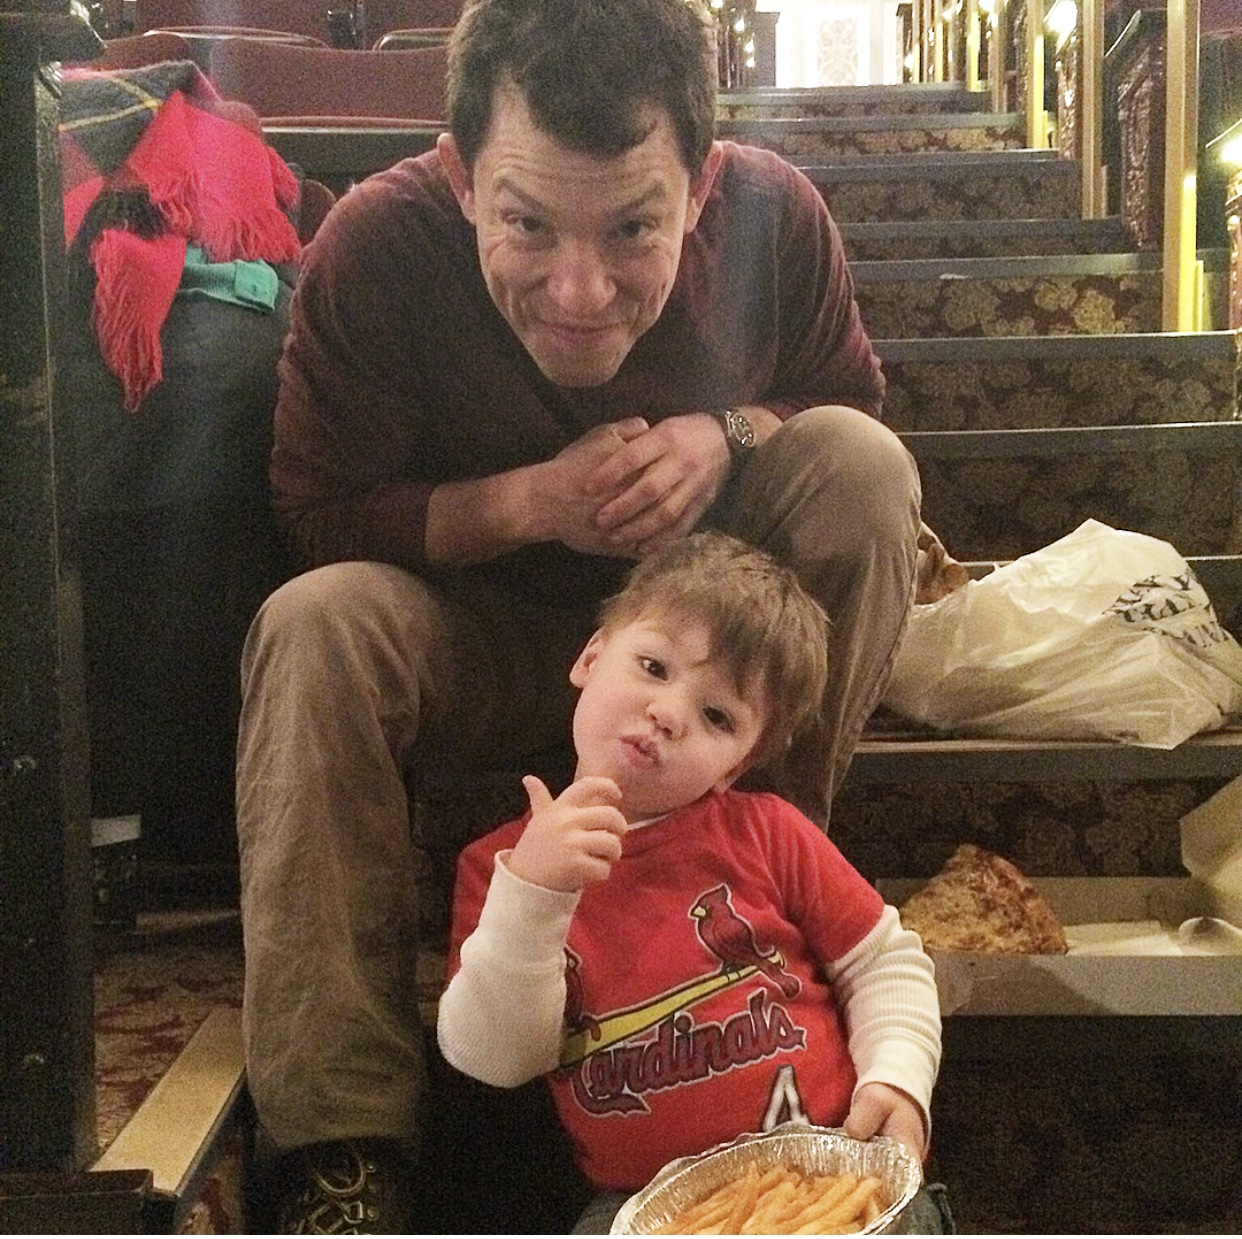 3/7/2015 Pizza dinner with Daddy at the Richard Rogers Theater in NYC